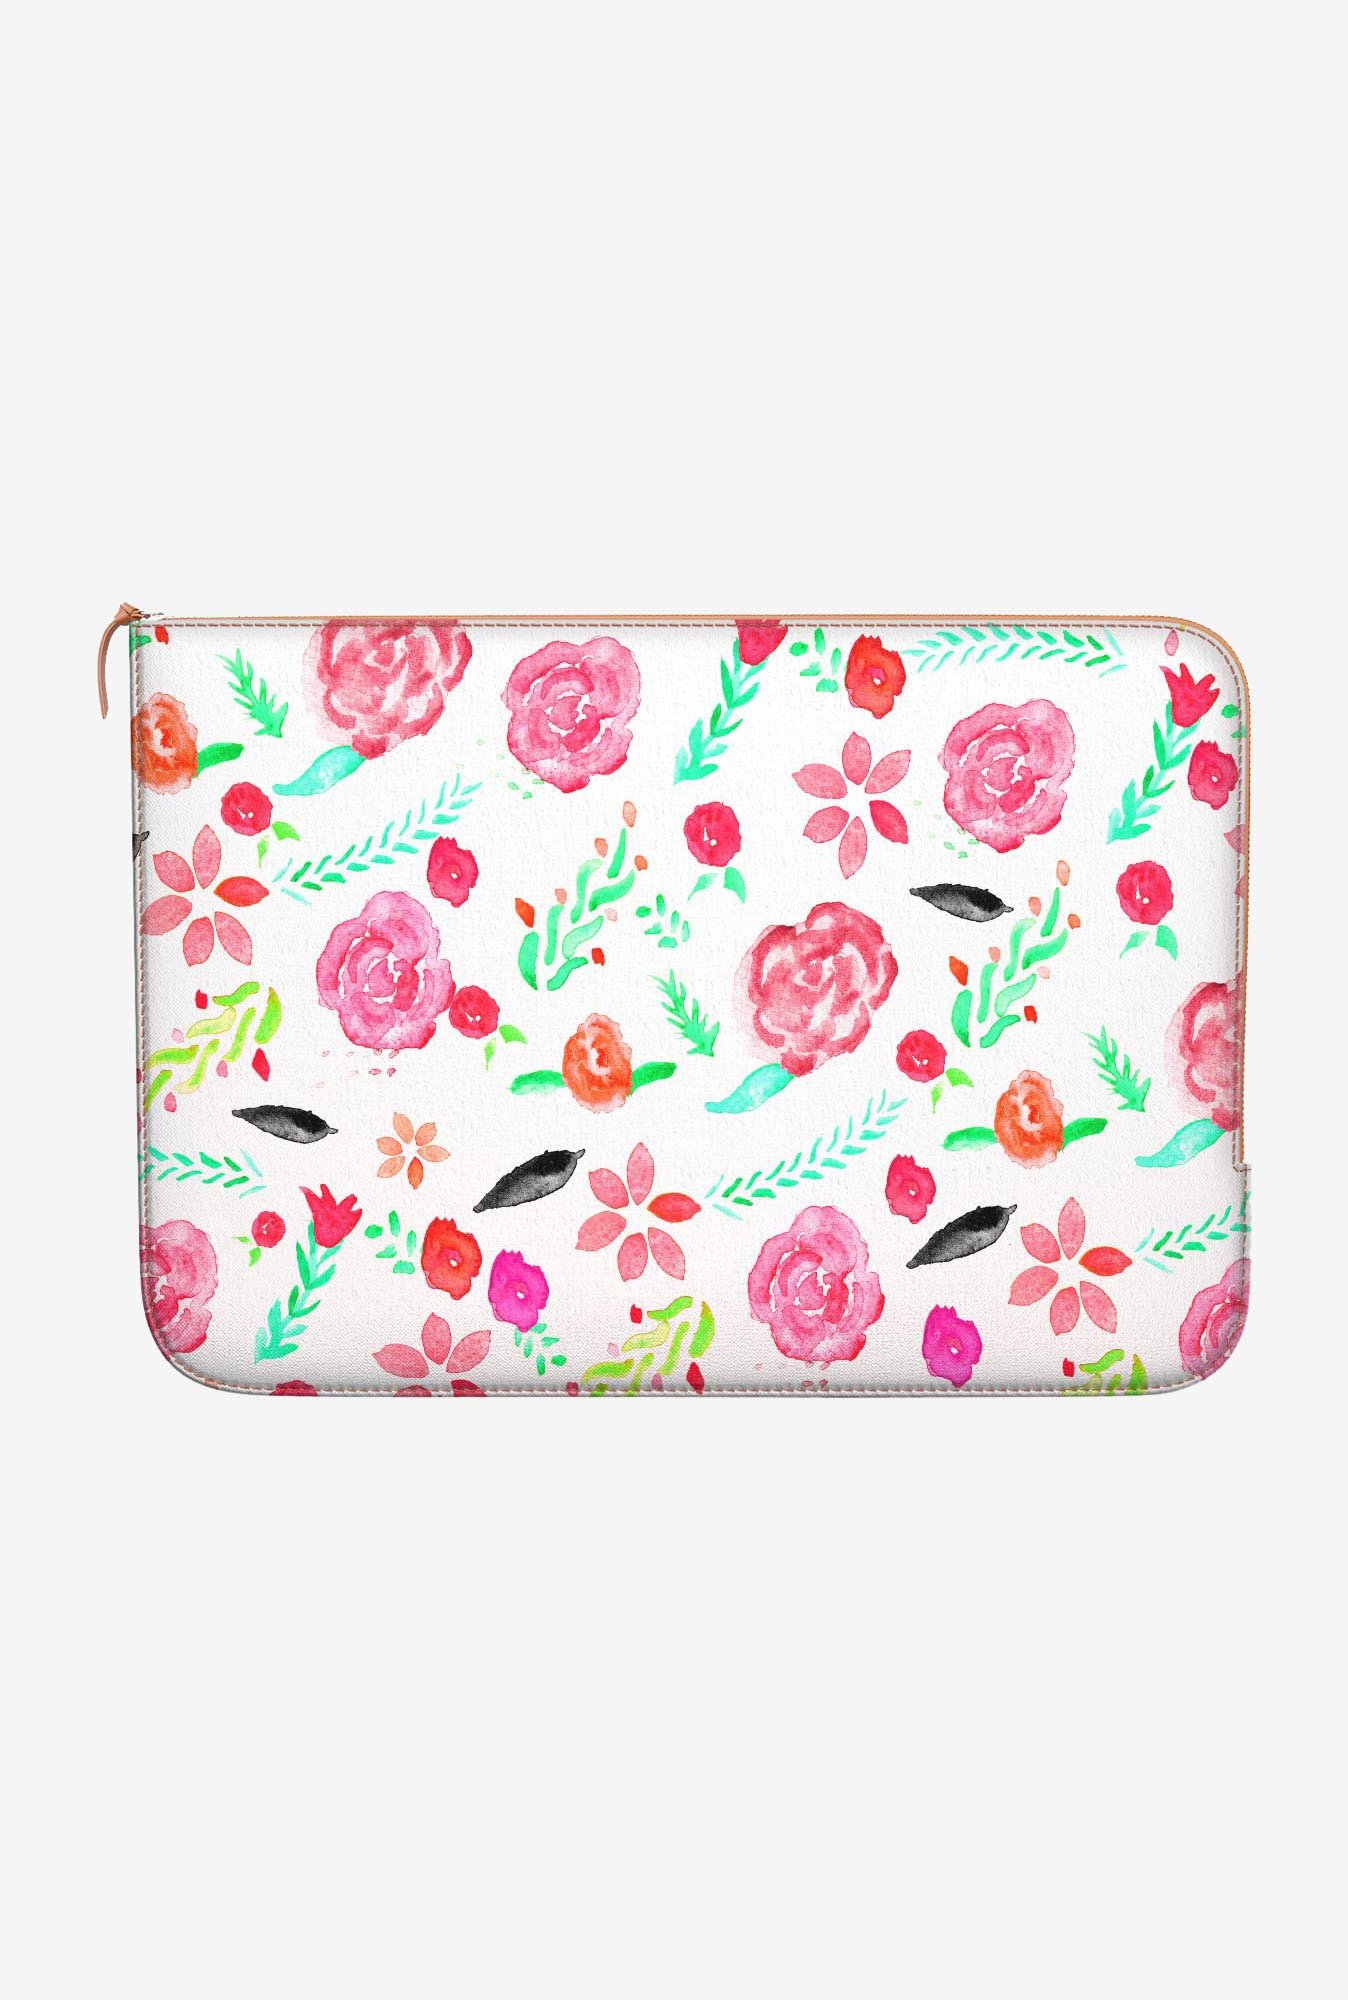 DailyObjects Floral Botanical MacBook 12 Zippered Sleeve